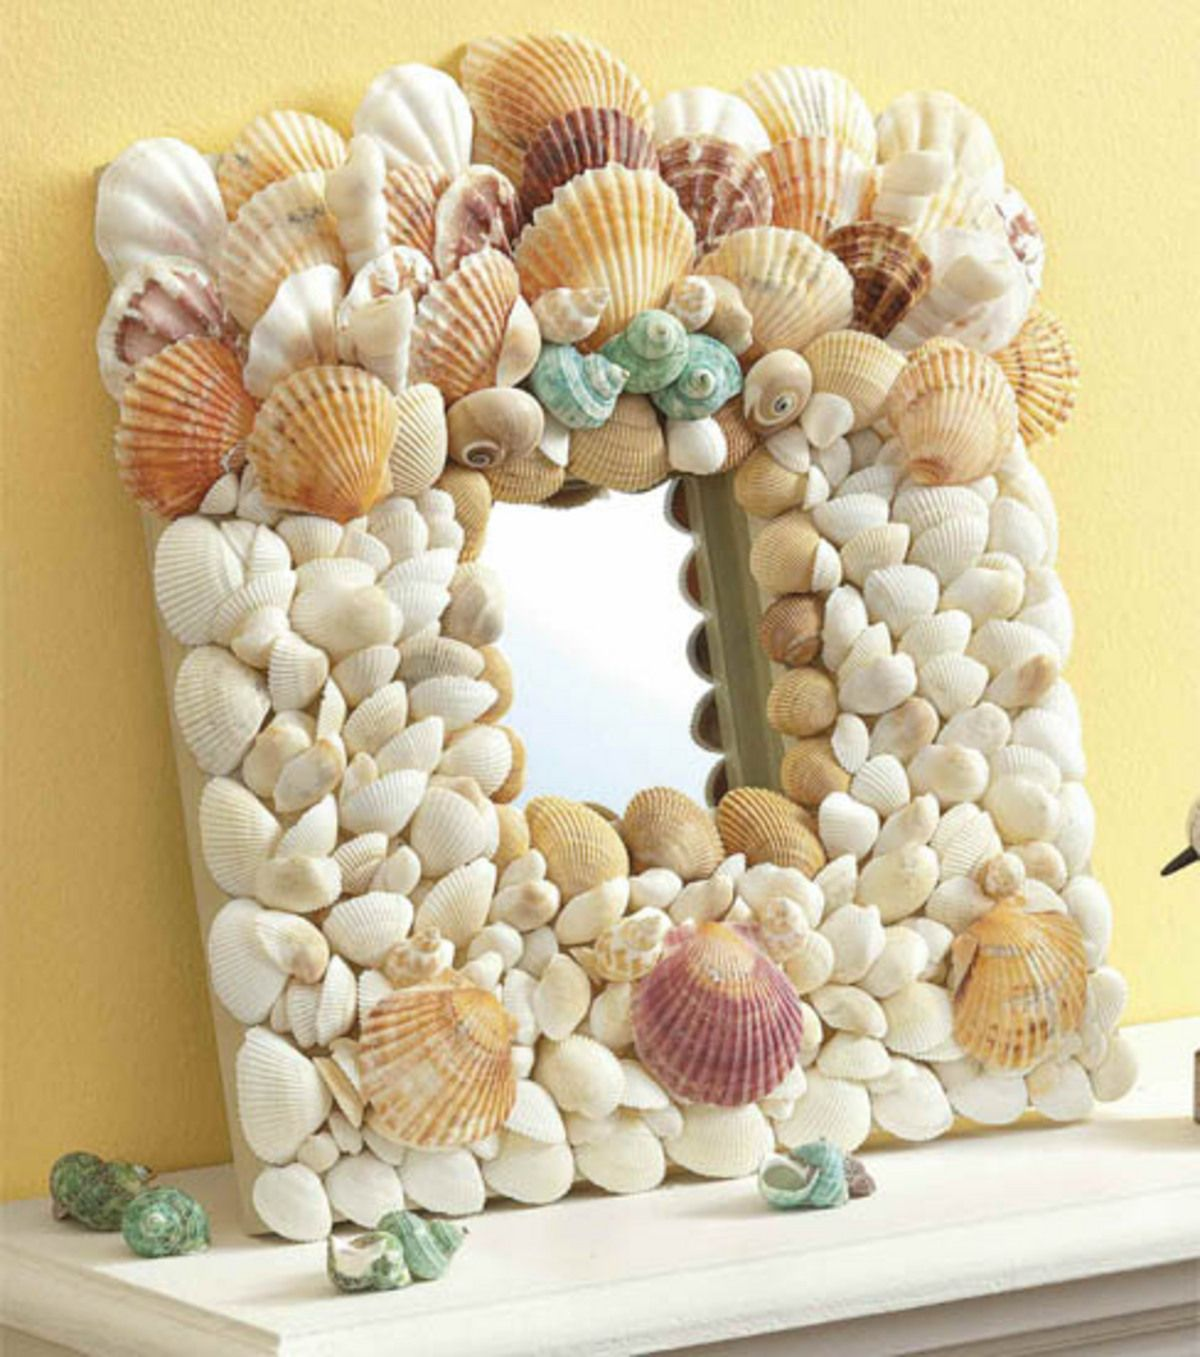 Make A Seashell Frame Or Seashell Mirror With Supplies From Joann